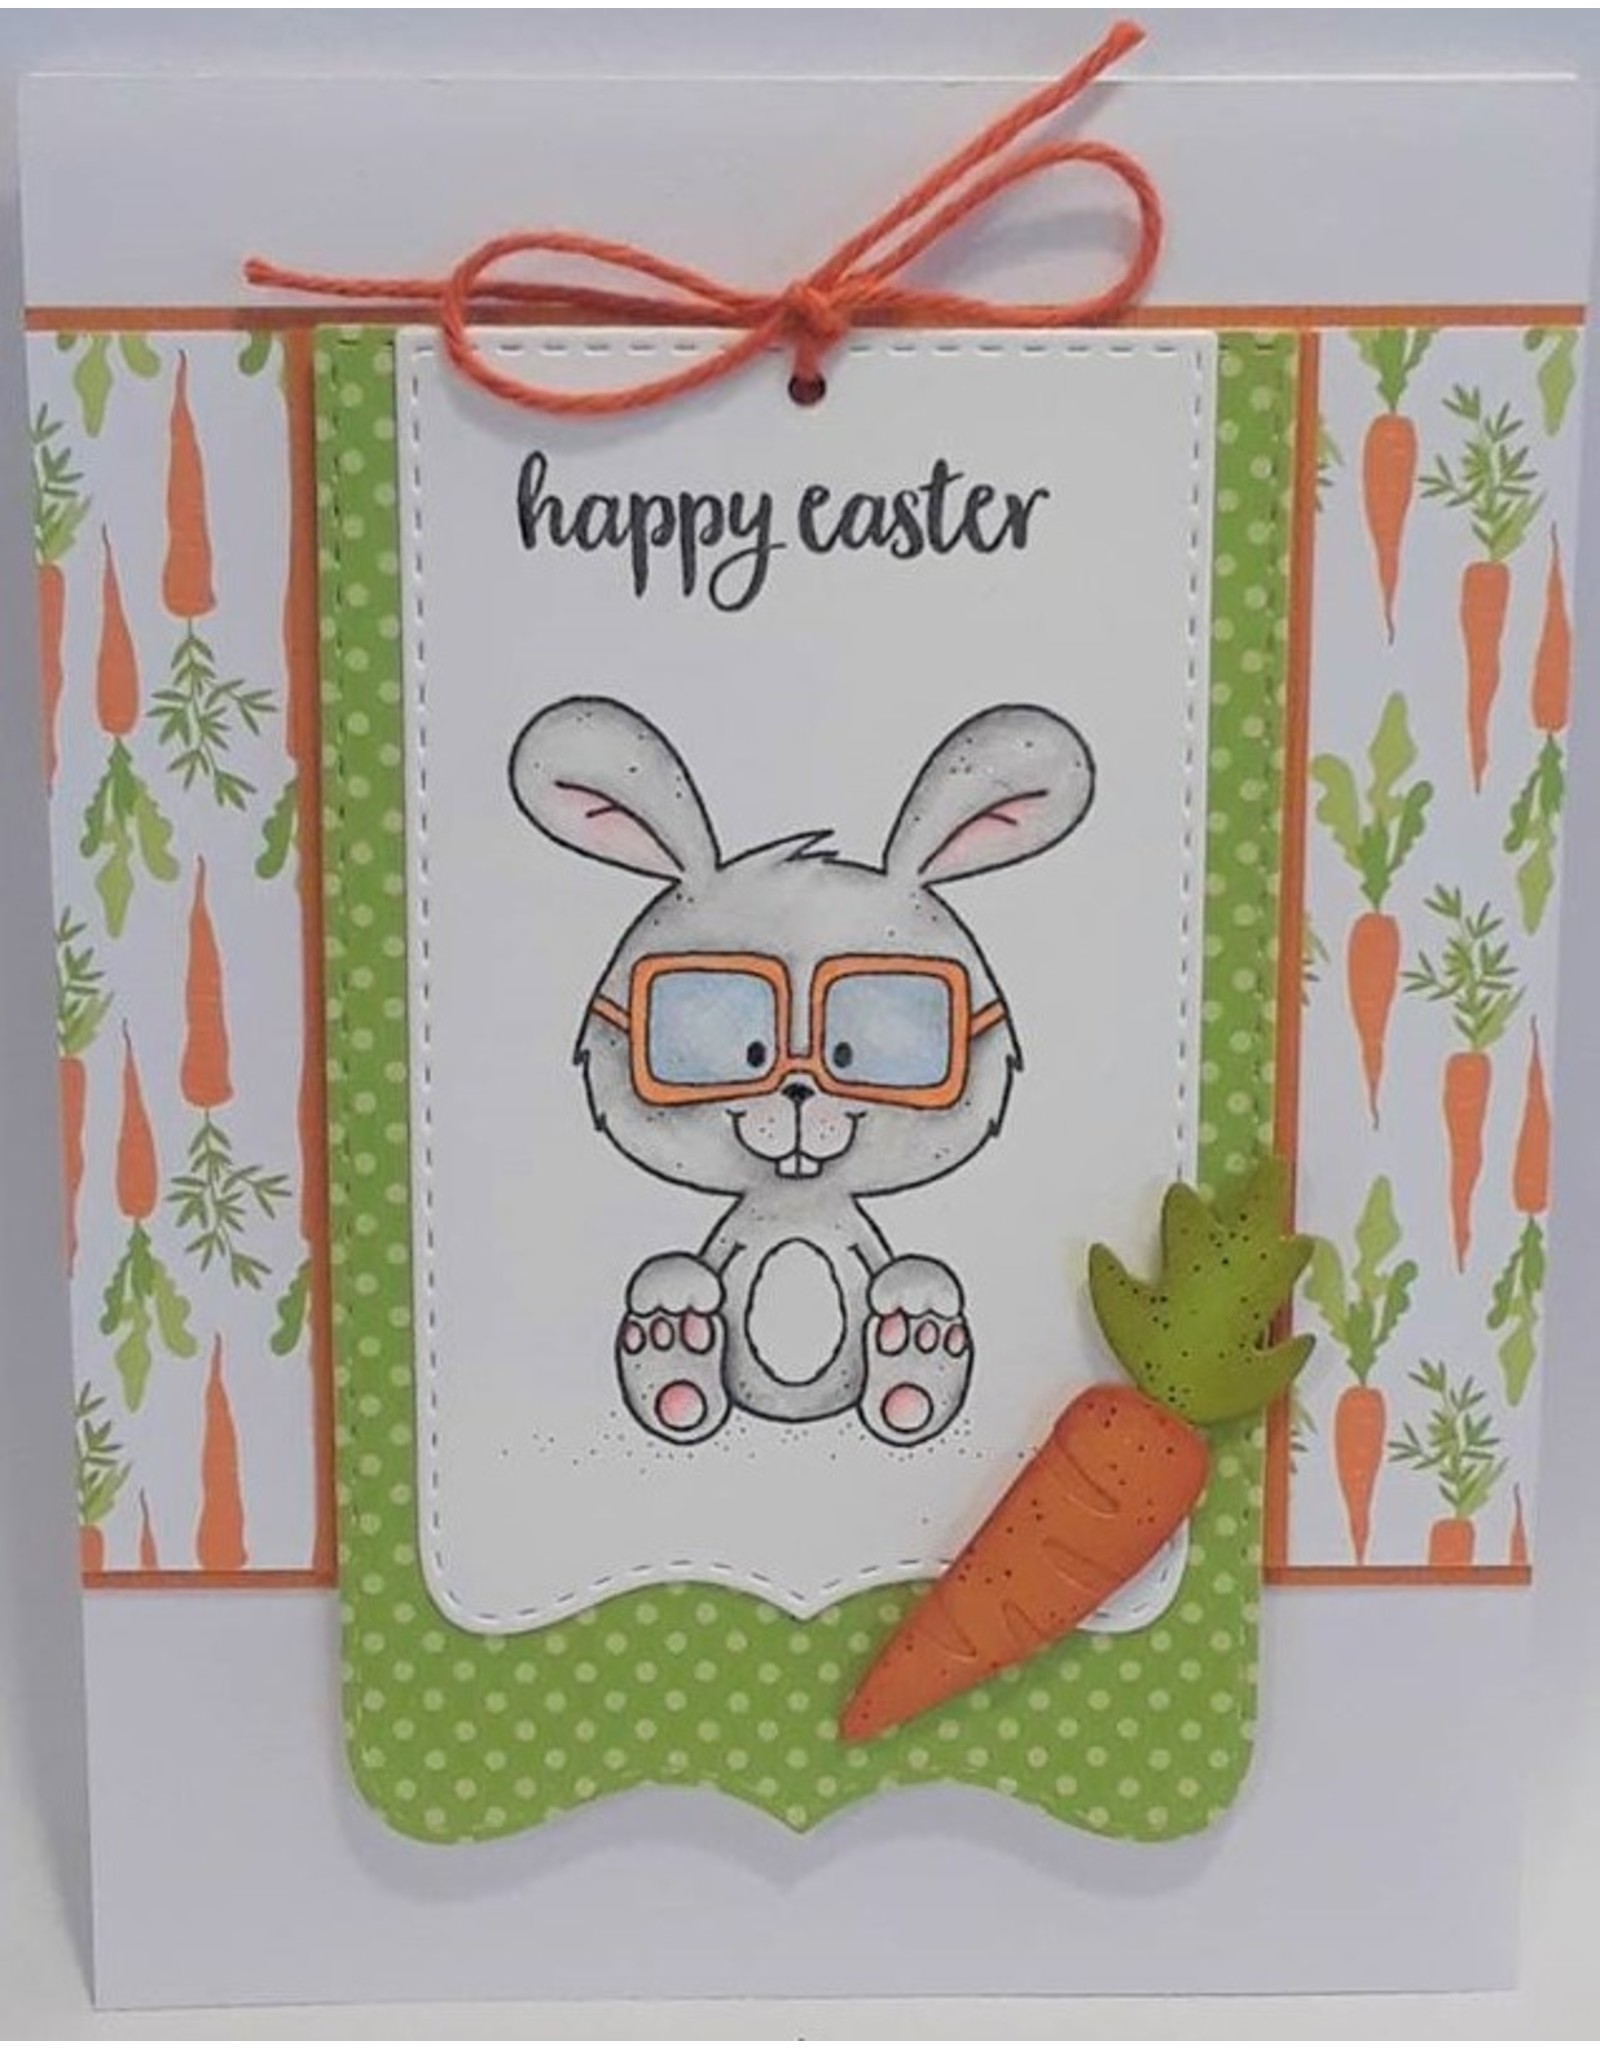 Paws-Itively Pawsome Designs Cute Carrots - Die